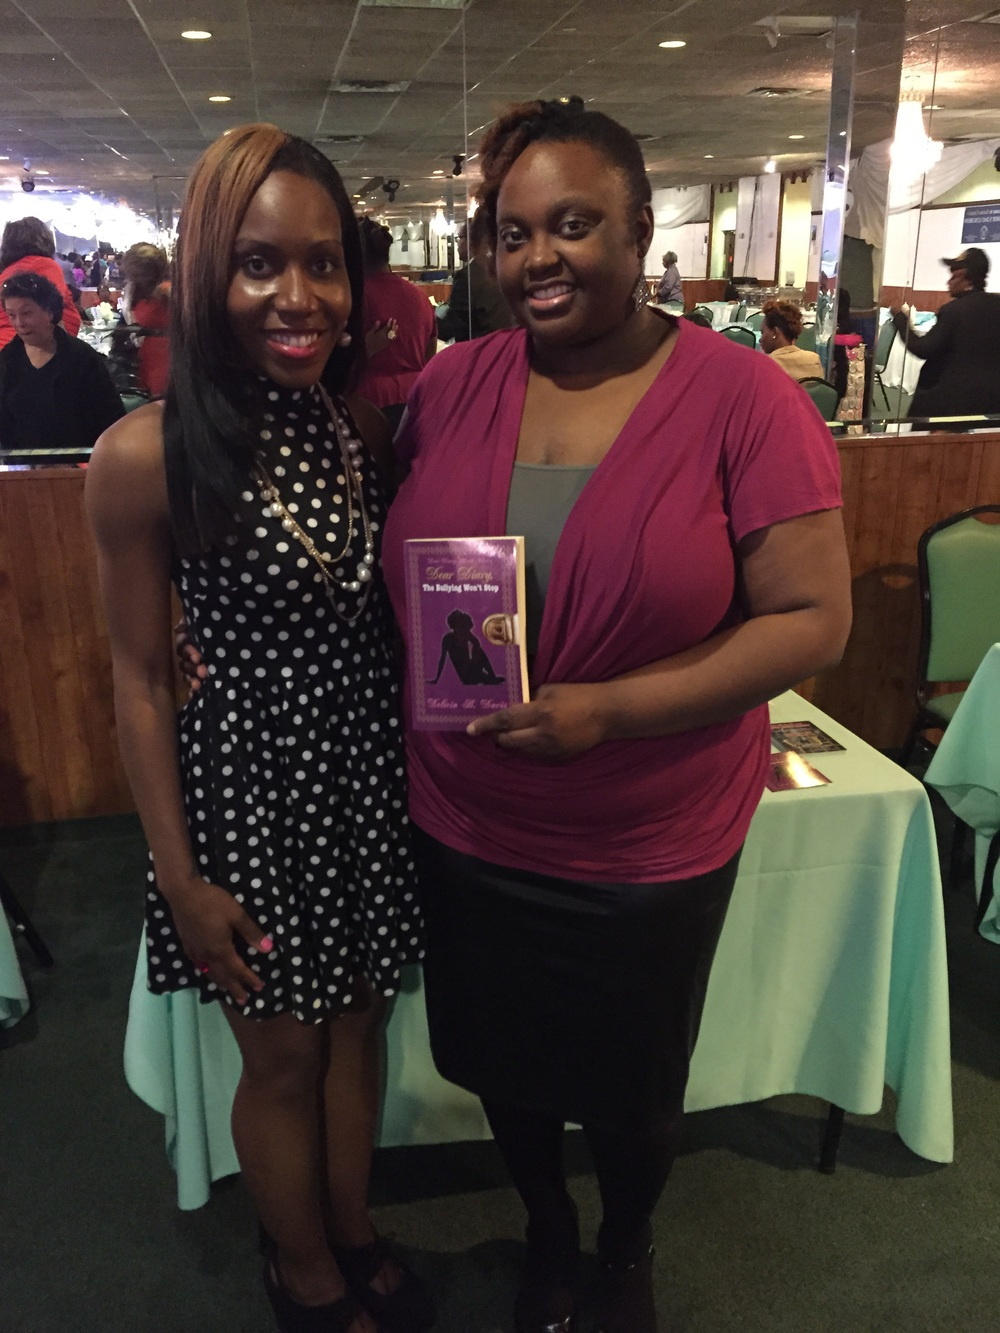 Author, Delicia B. Davis and me, Crystal Haynes of CrystalSays.com